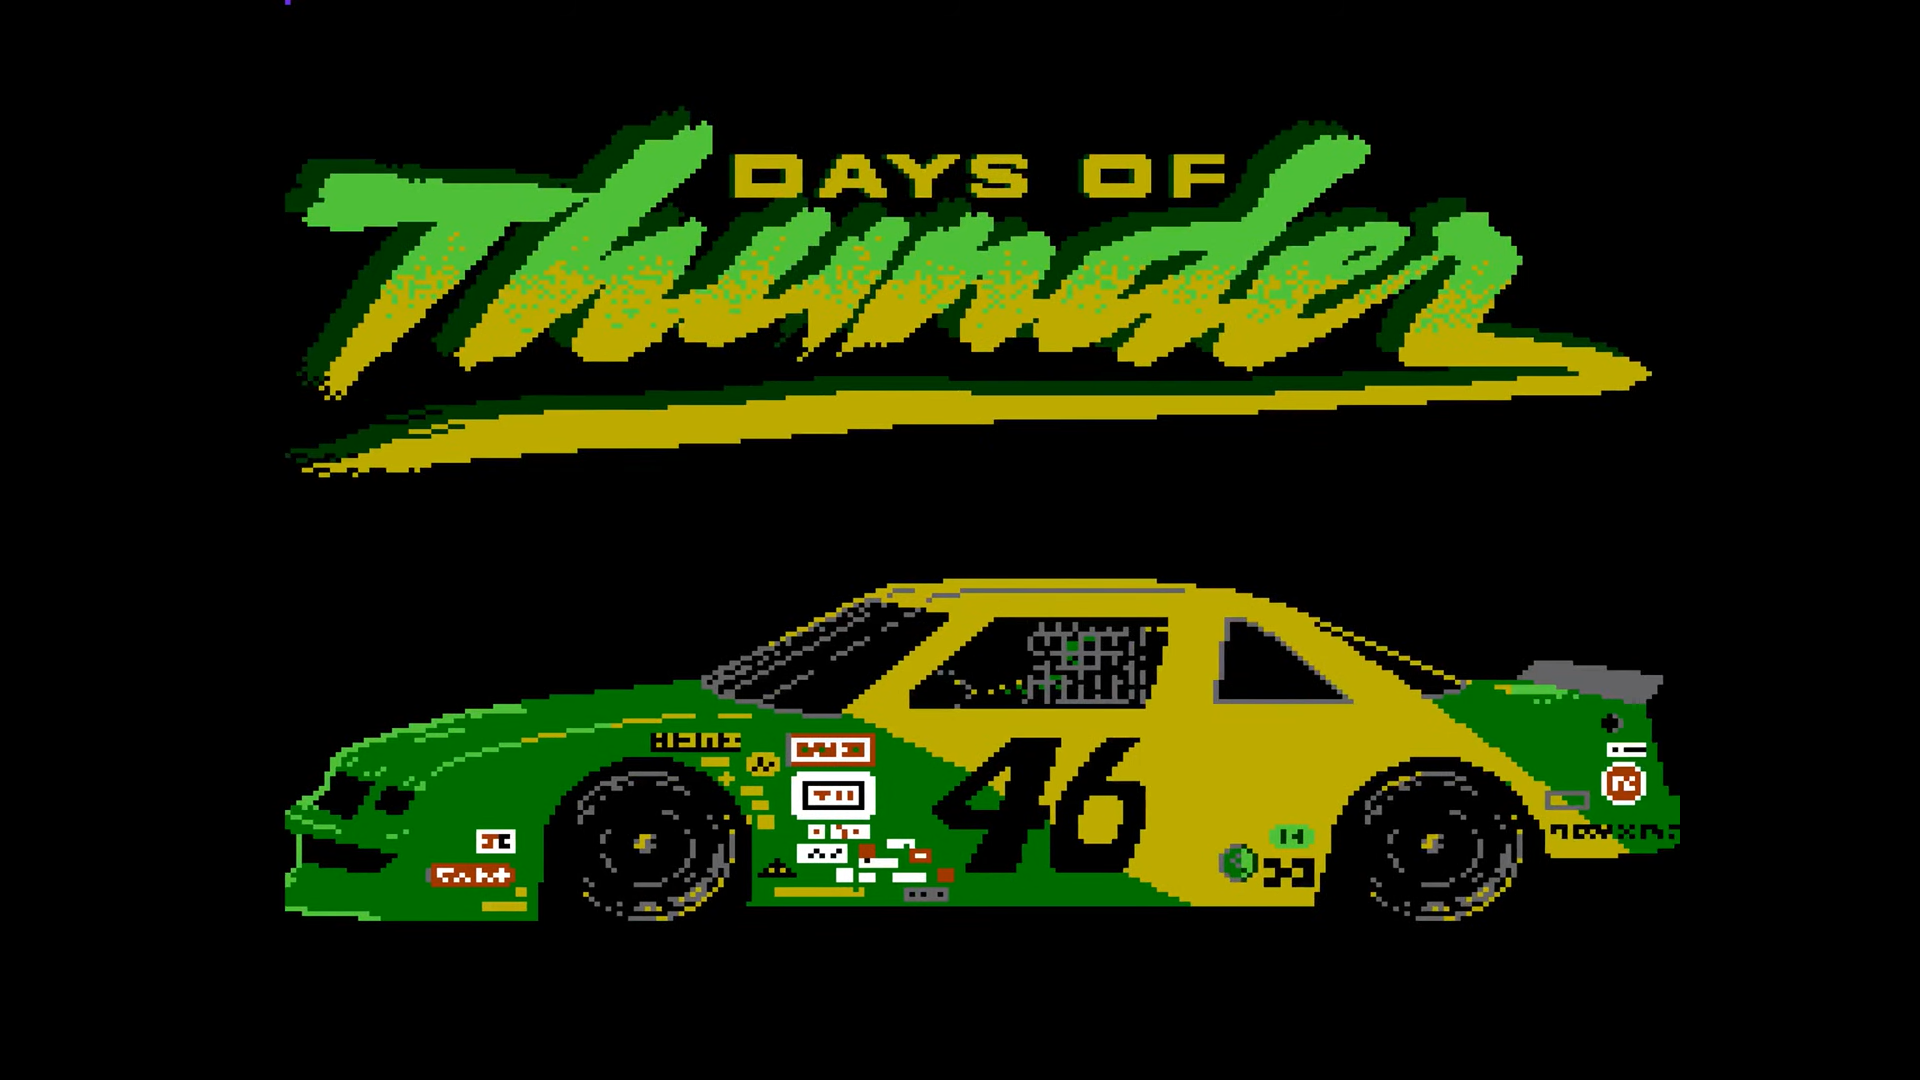 title screen for days of thunder, a never-before-seen NES game